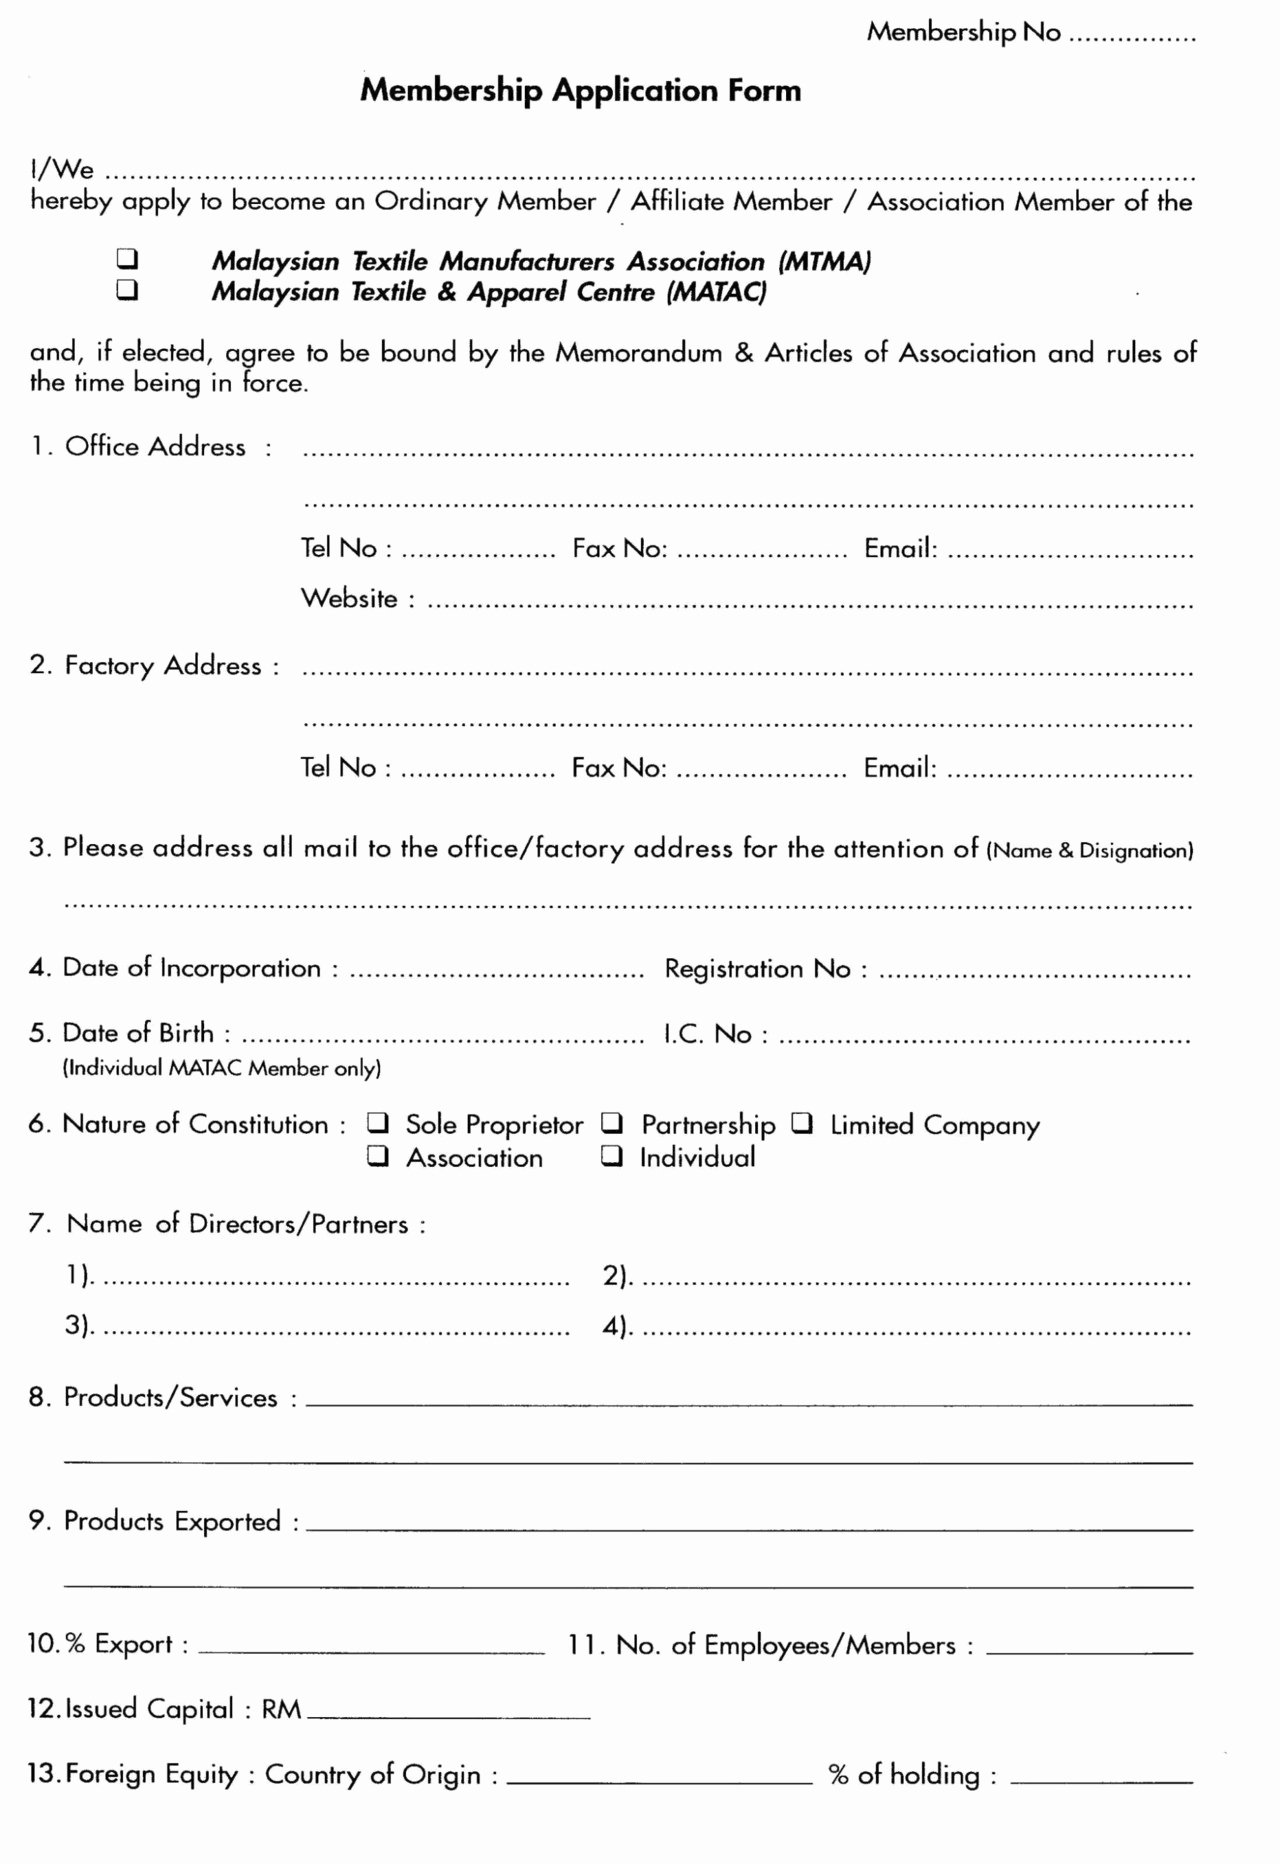 Membership Application Template Free Awesome association Membership Application form Template